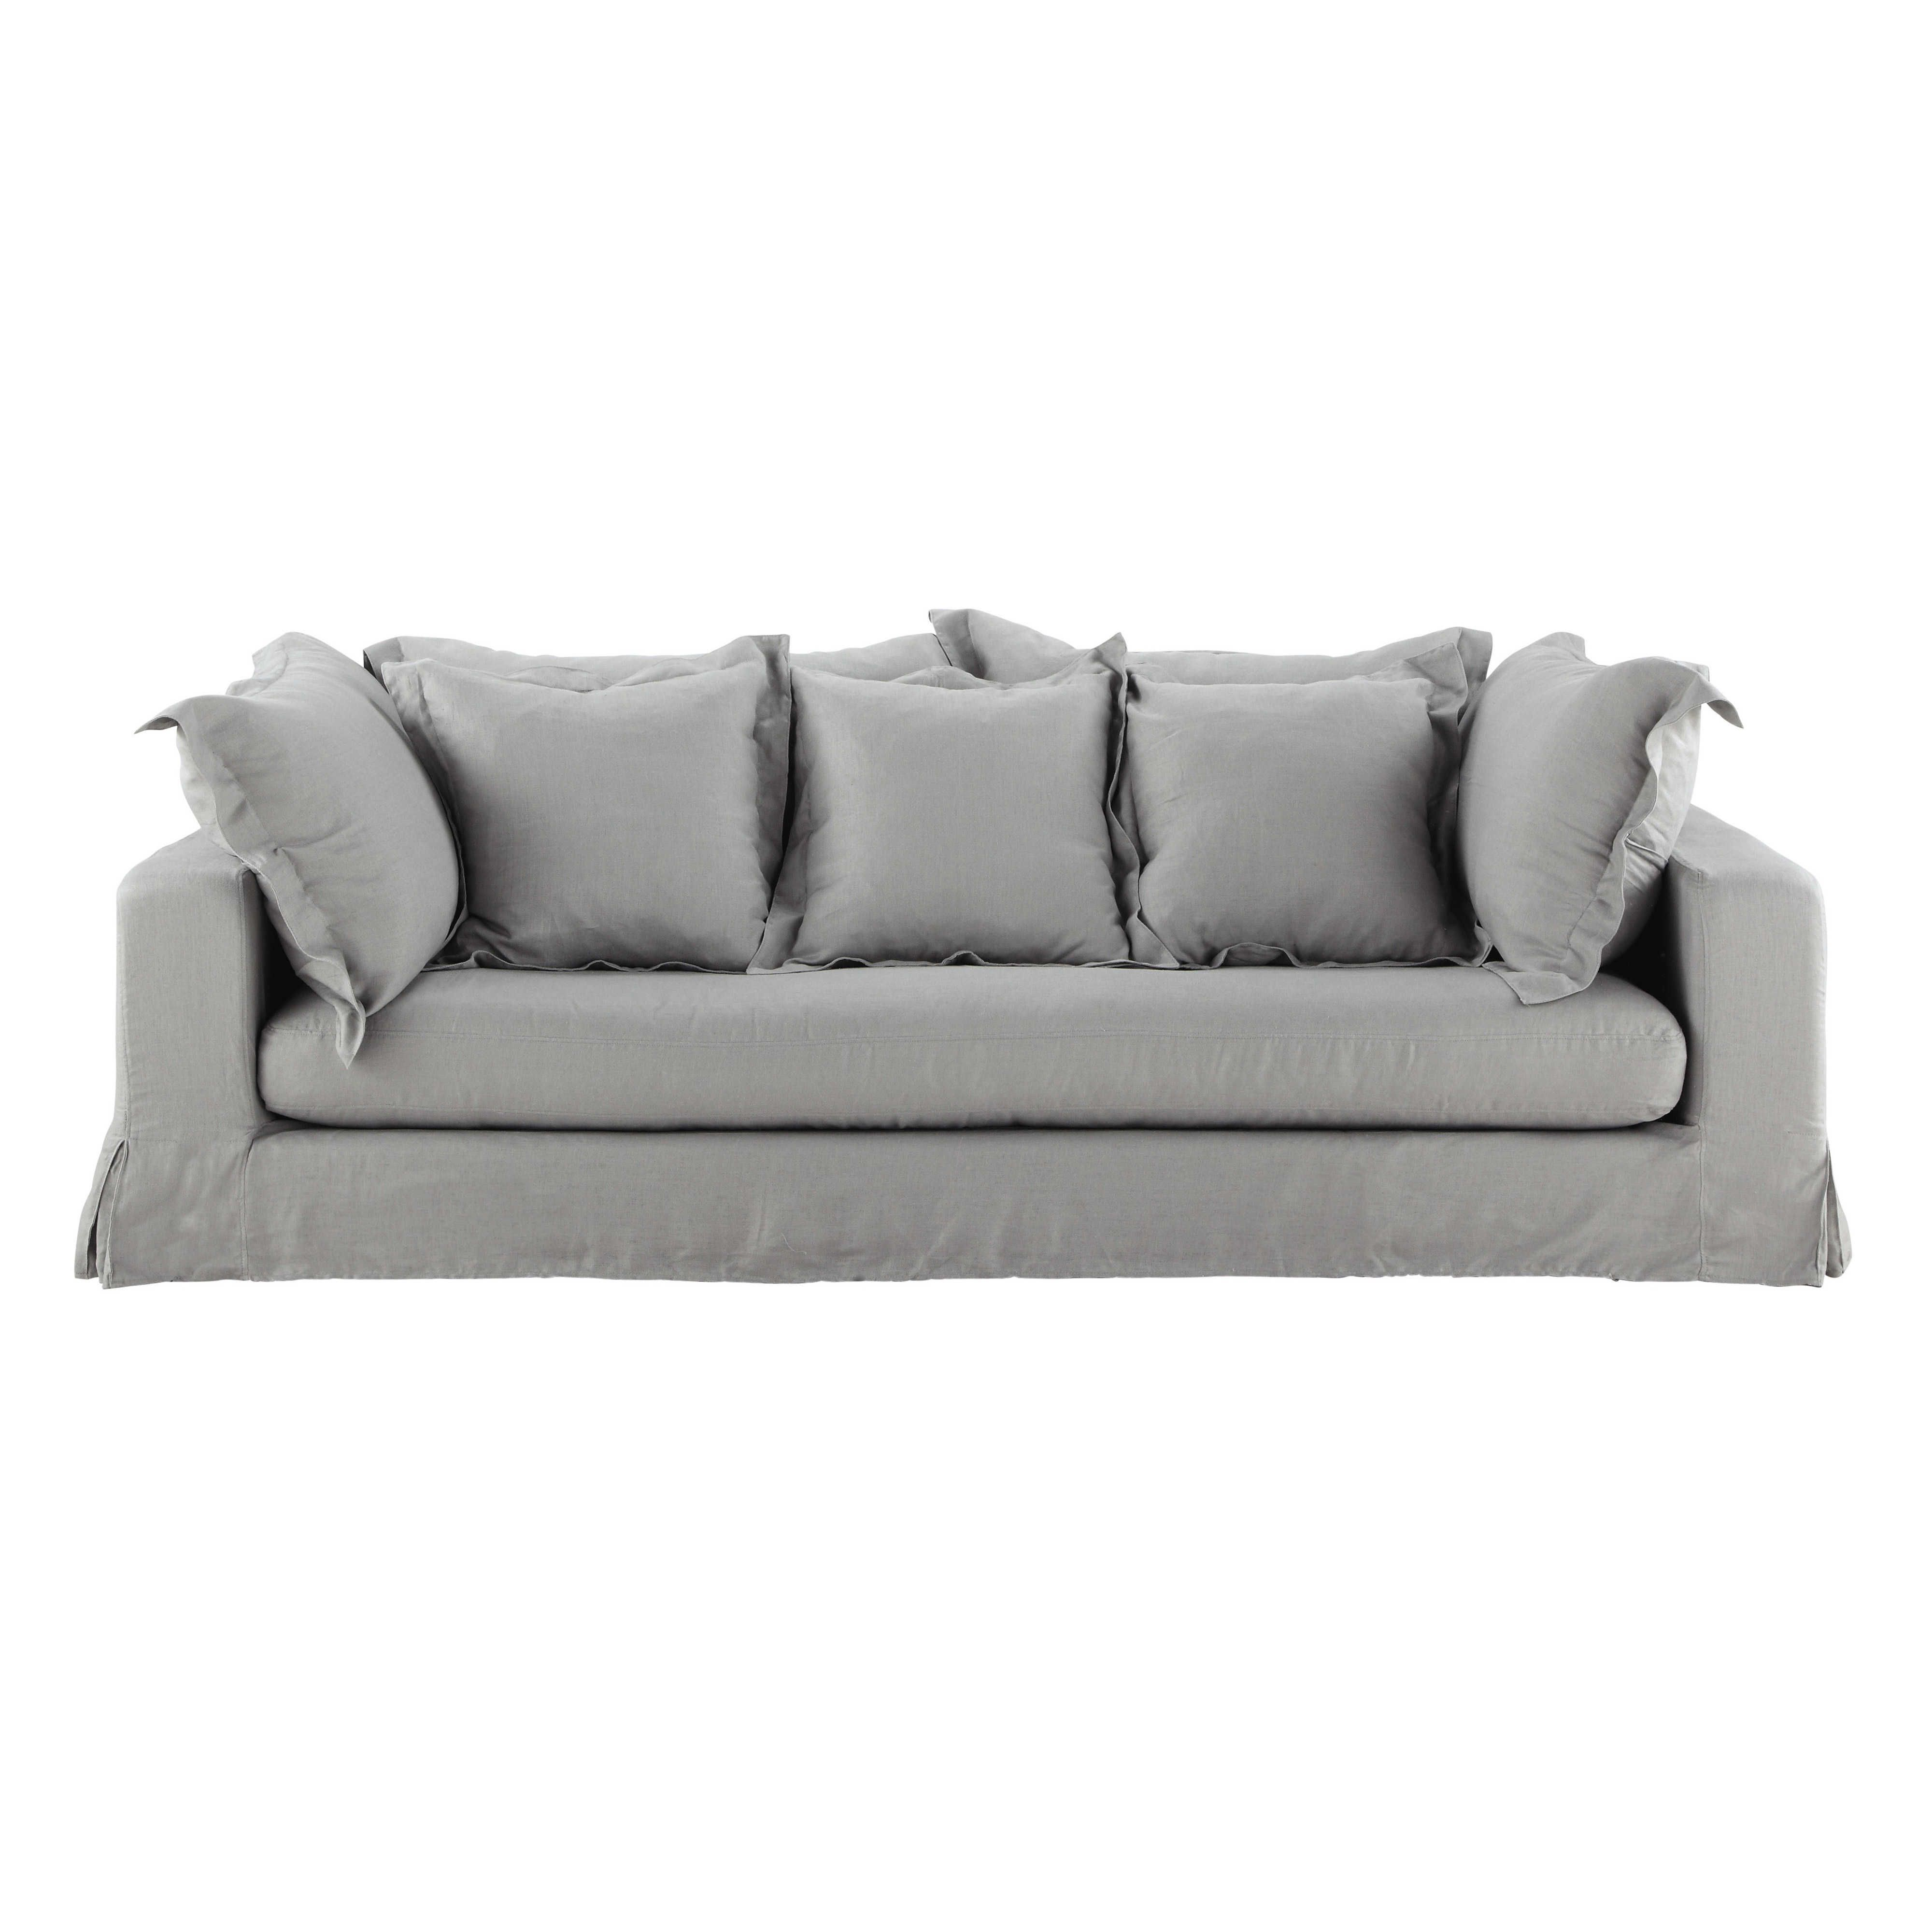 Canapé 3 places en lin lavé gris clair Achille | day bed en 2018 ...